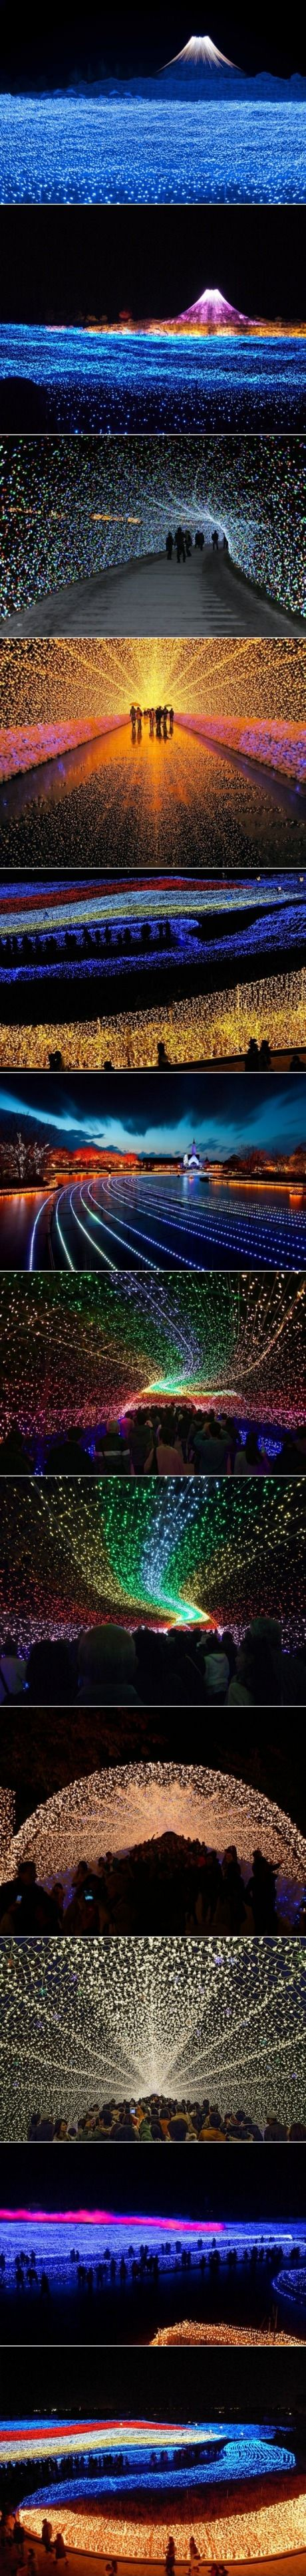 ~Japan's Winter Lights Festival made from 7 million LED's | House of Beccaria